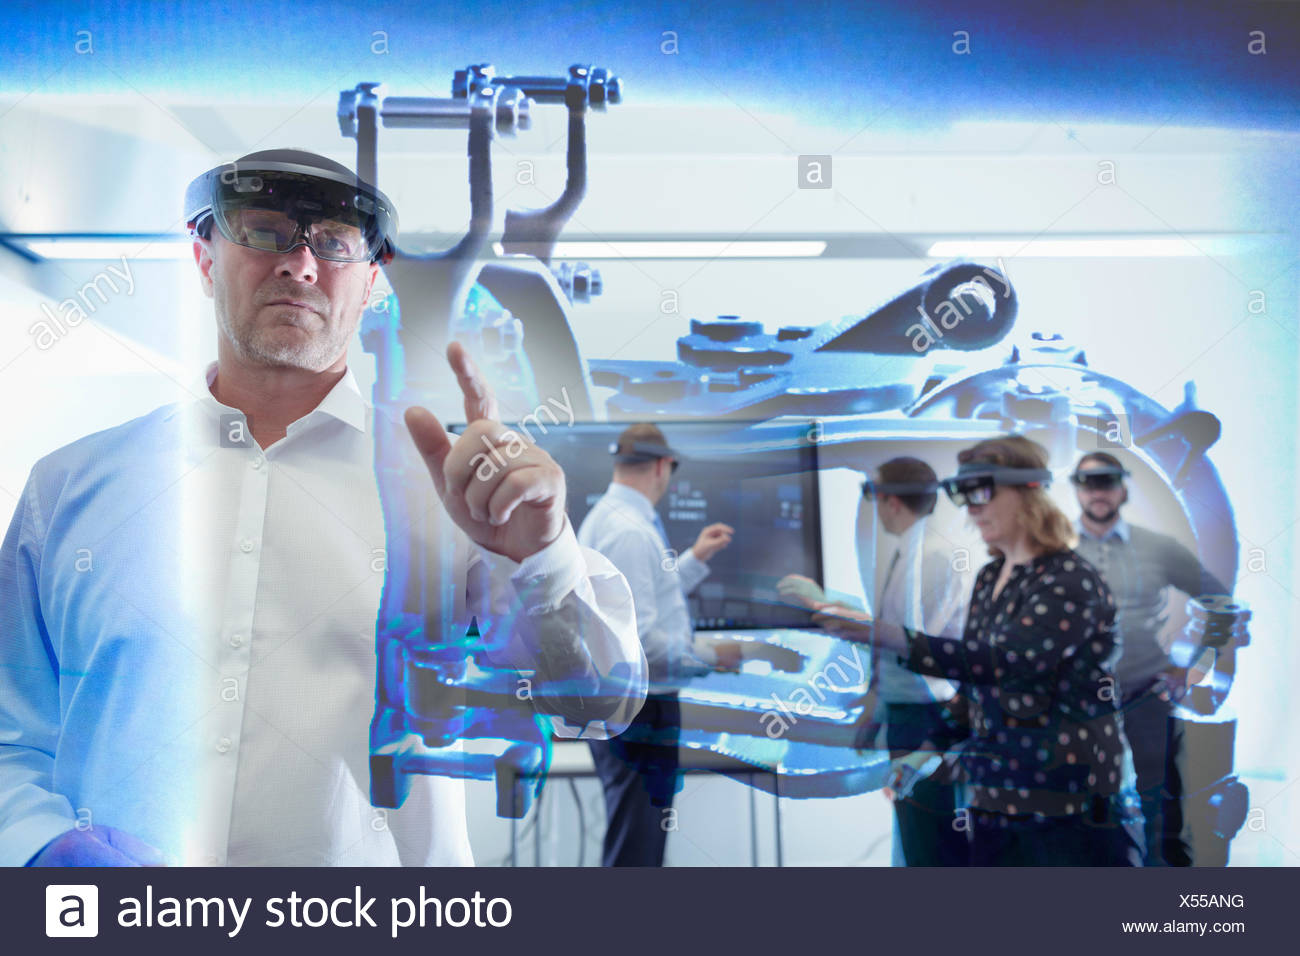 Engineers using Virtual Reality system in railway engineering facility - Stock Image